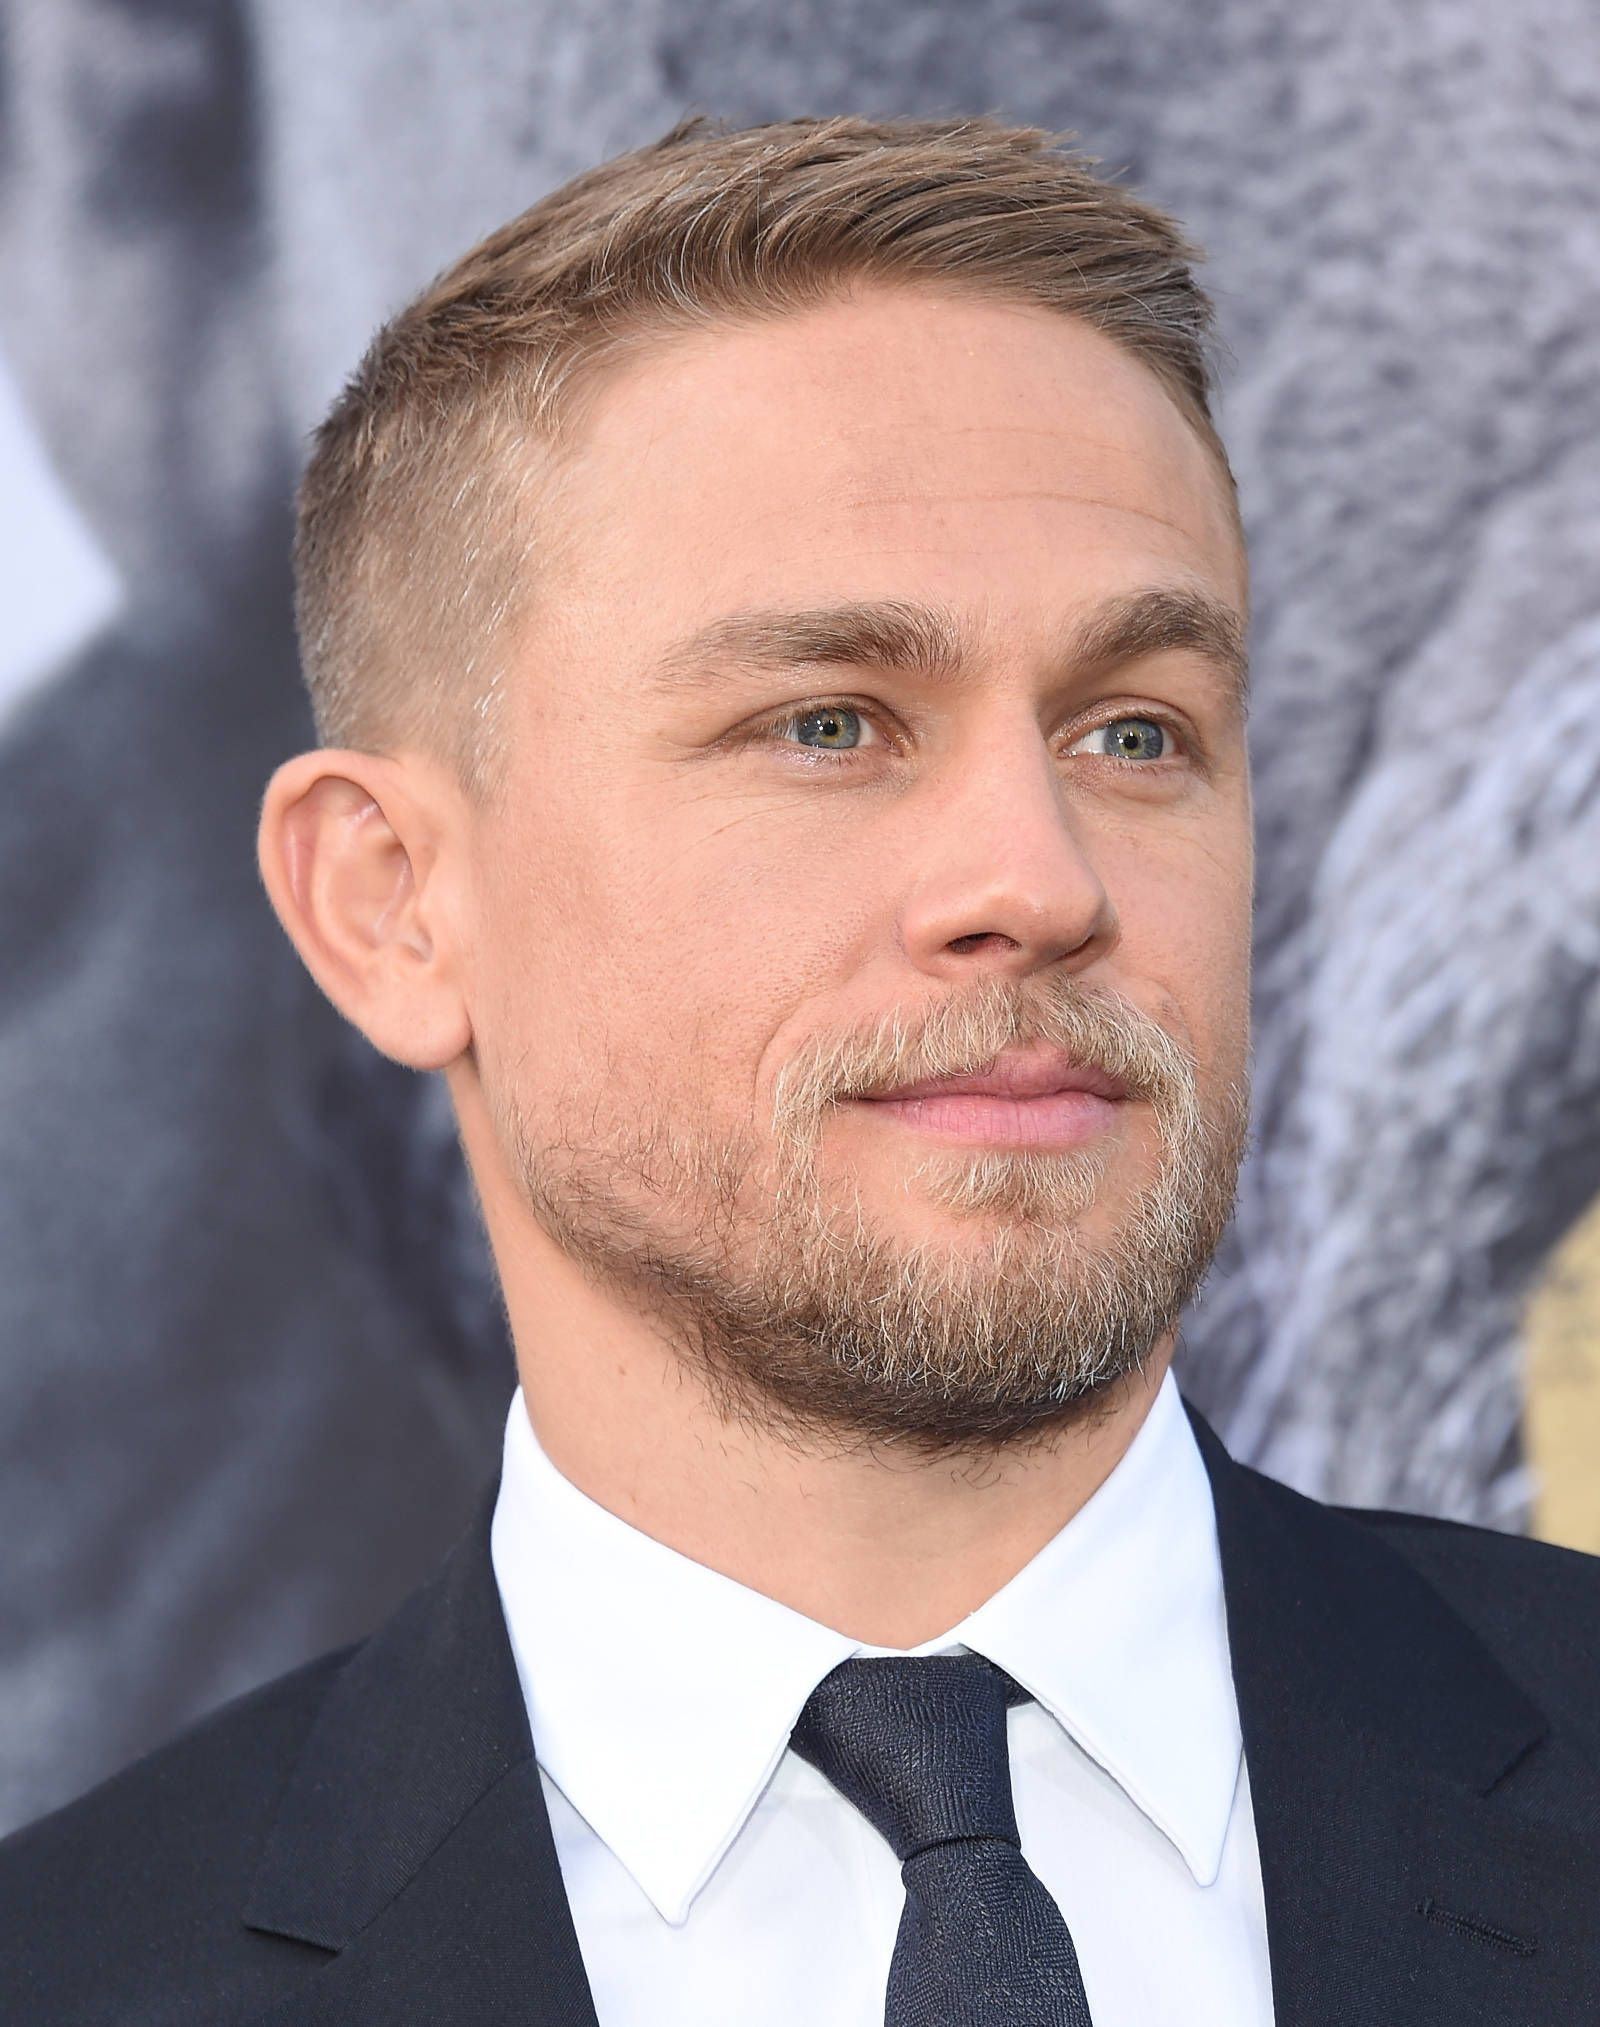 best 50 blonde hairstyles for men to try in 2019 | the